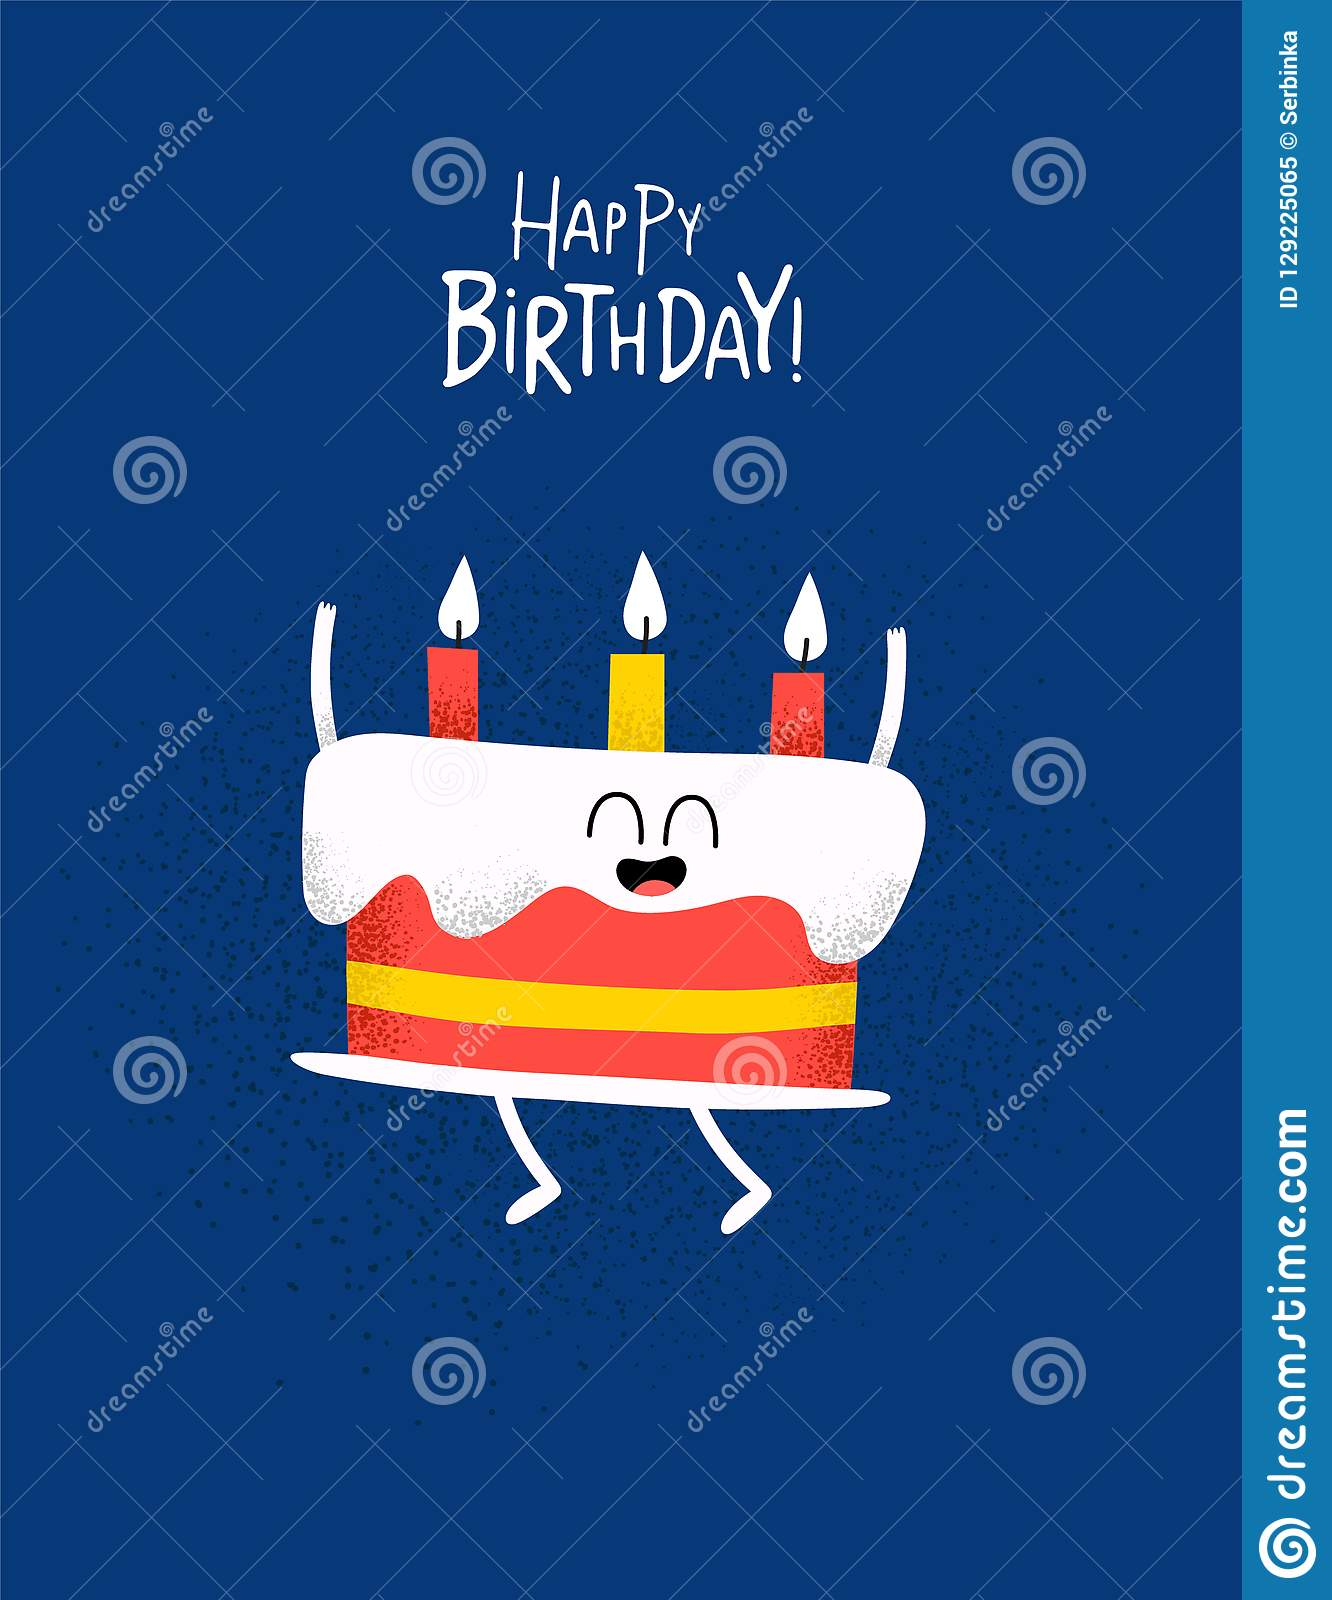 Stupendous Funny Happy Birthday Card Cake With Candels Stock Illustration Funny Birthday Cards Online Alyptdamsfinfo